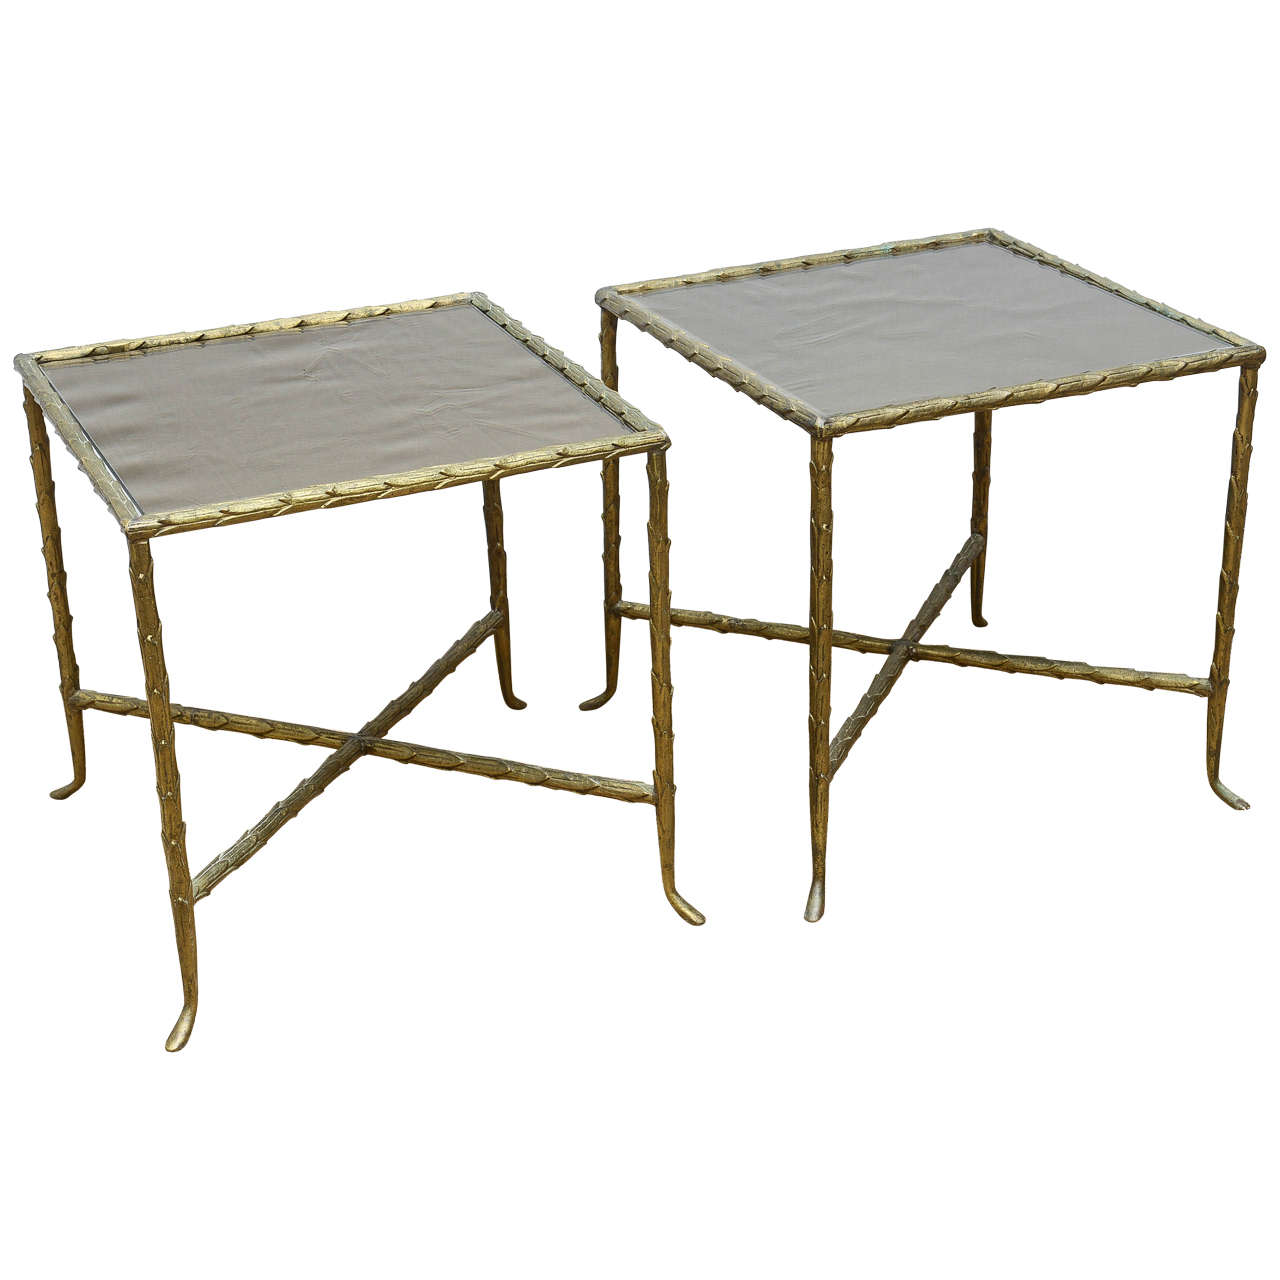 Pair Of Bagues Style Bronze U0026 Bronze Mirrored Mid Century Modern Side Tables